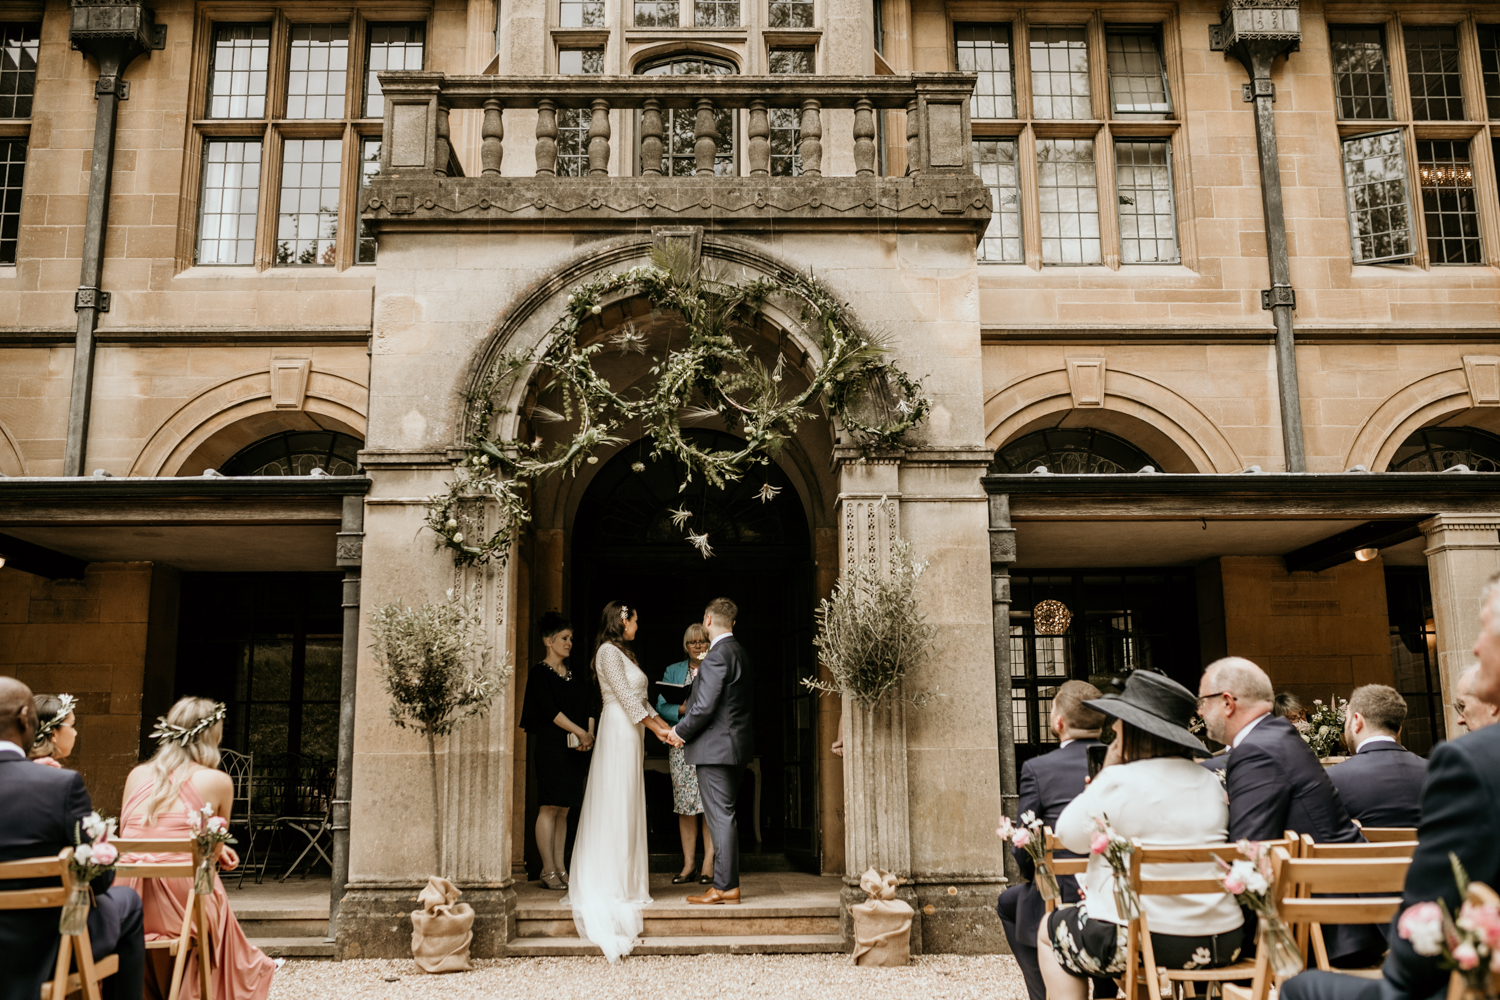 bride and groom wedding vows for an outdoor wedding ceremony at Coombe Lodge Blagdon wedding venue